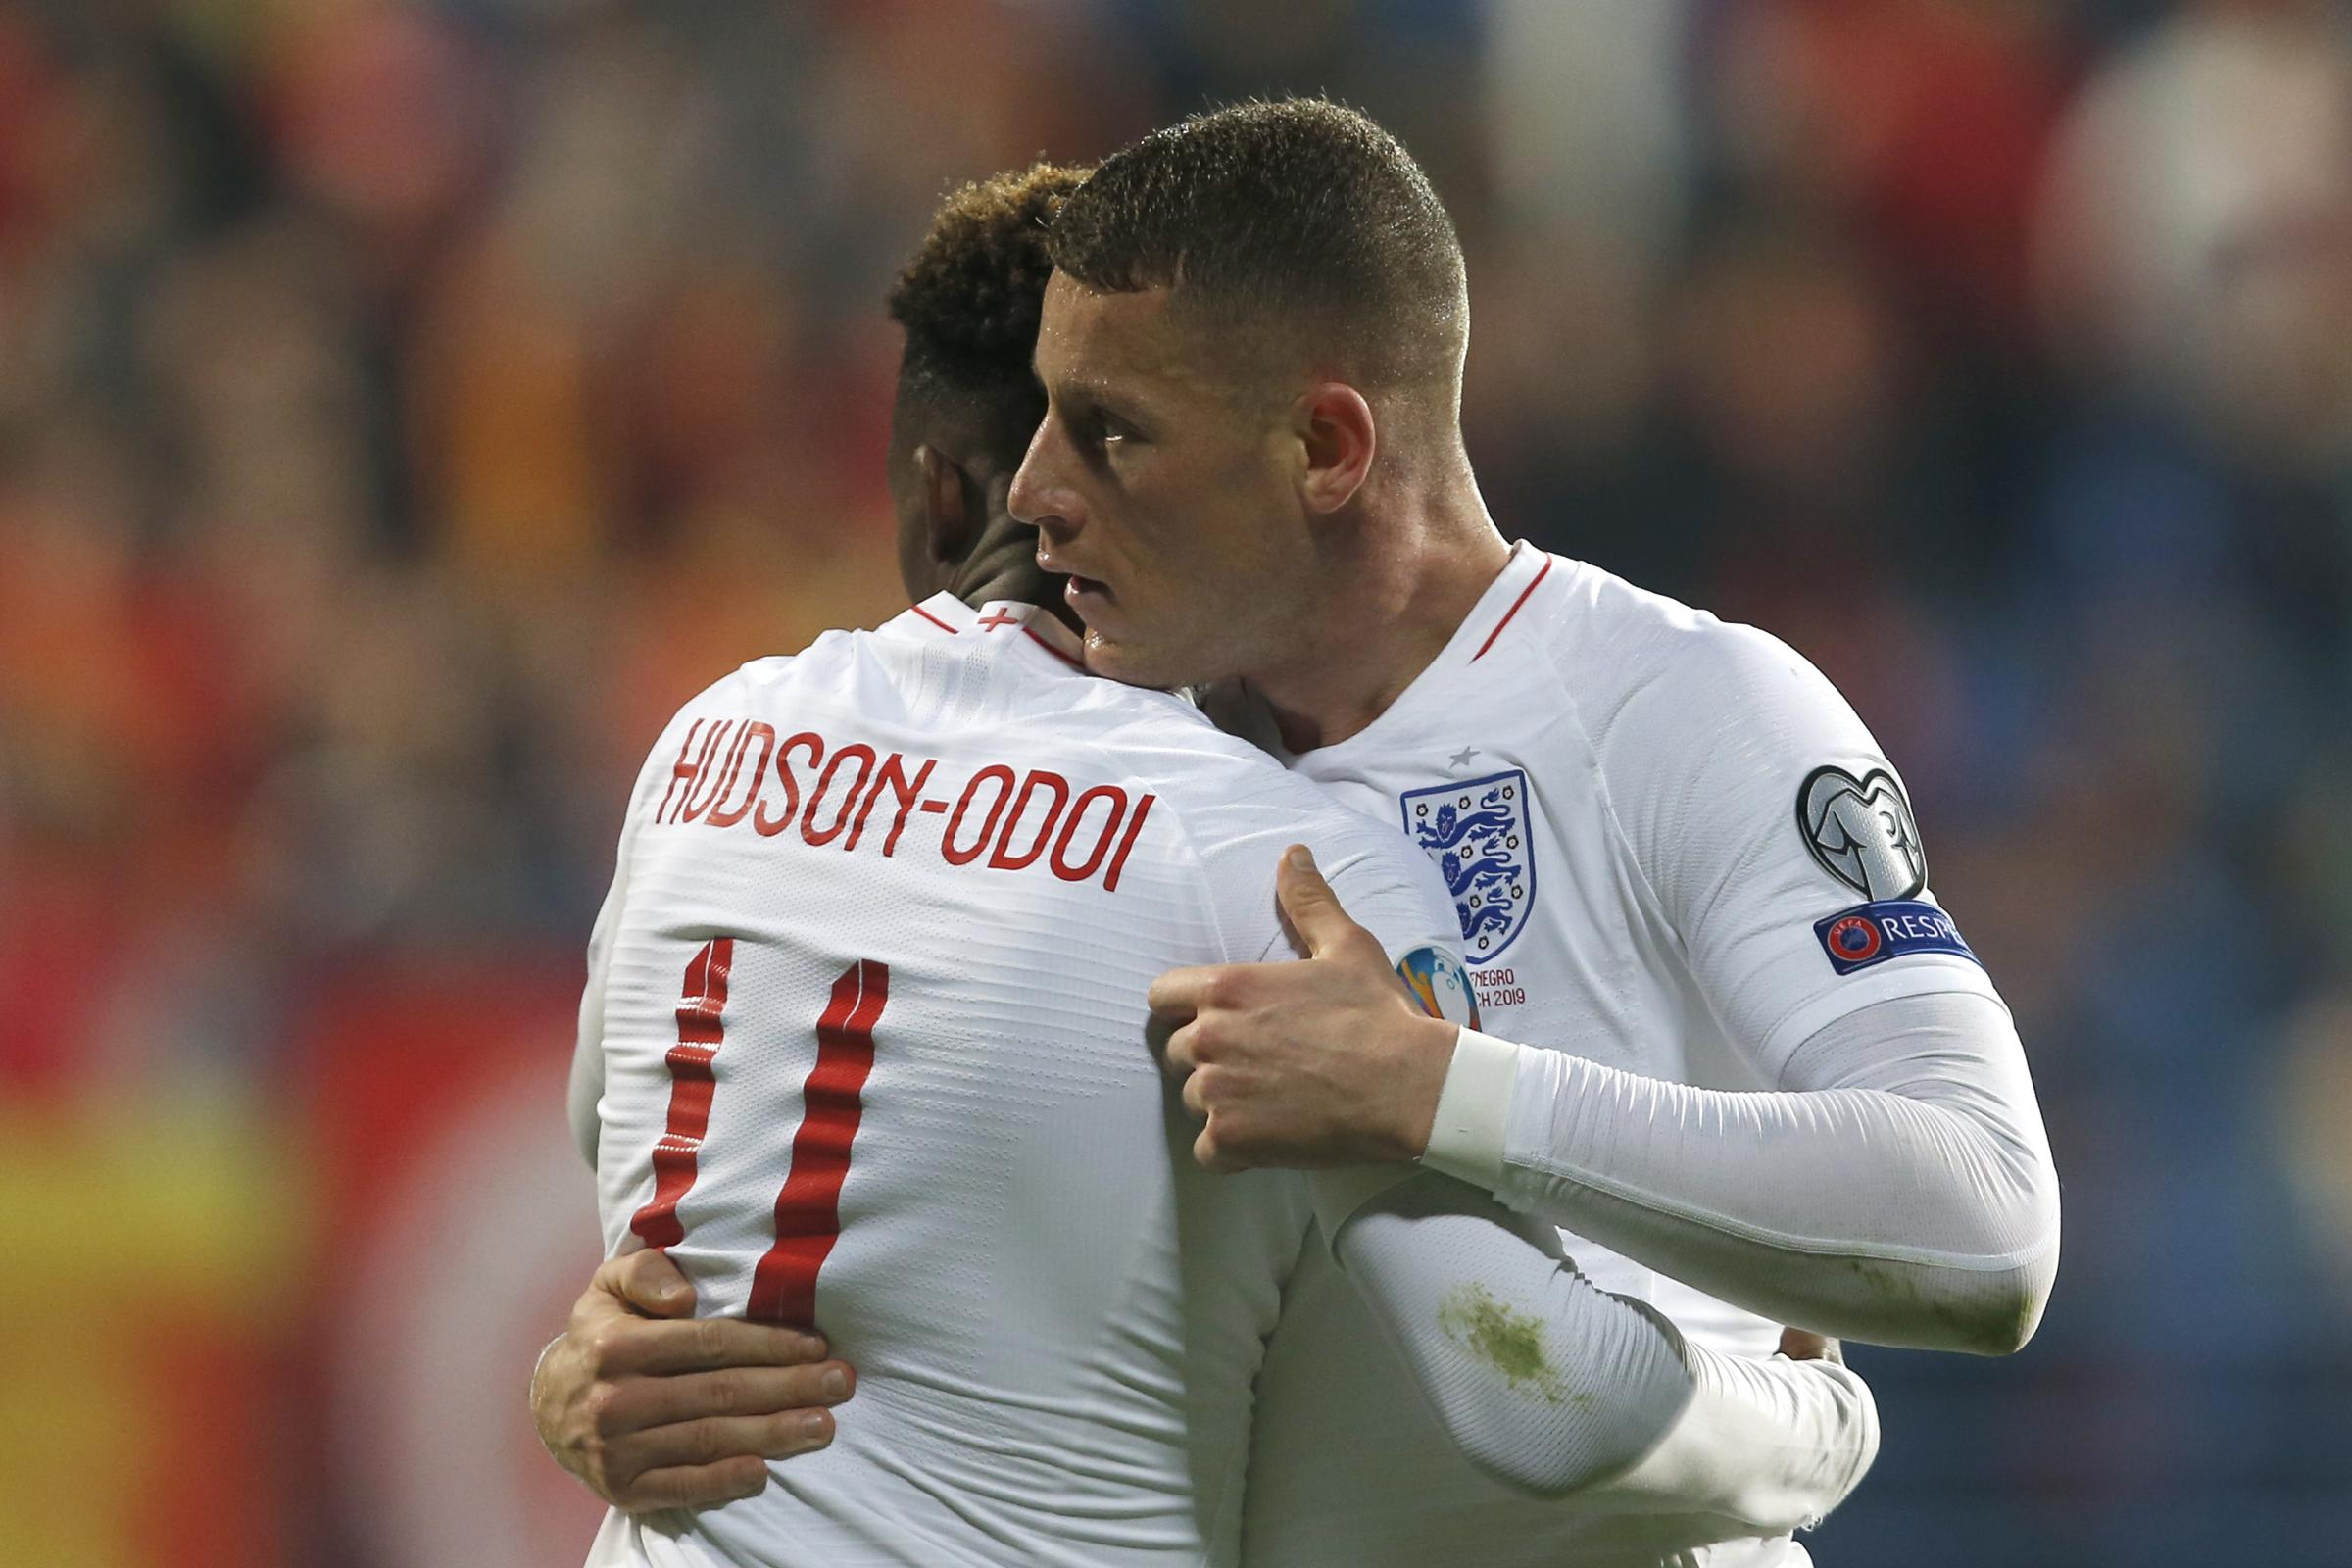 Chelsea duo Ross Barkley and Callum Hudson-Odoi helped England to victory in Podgorica